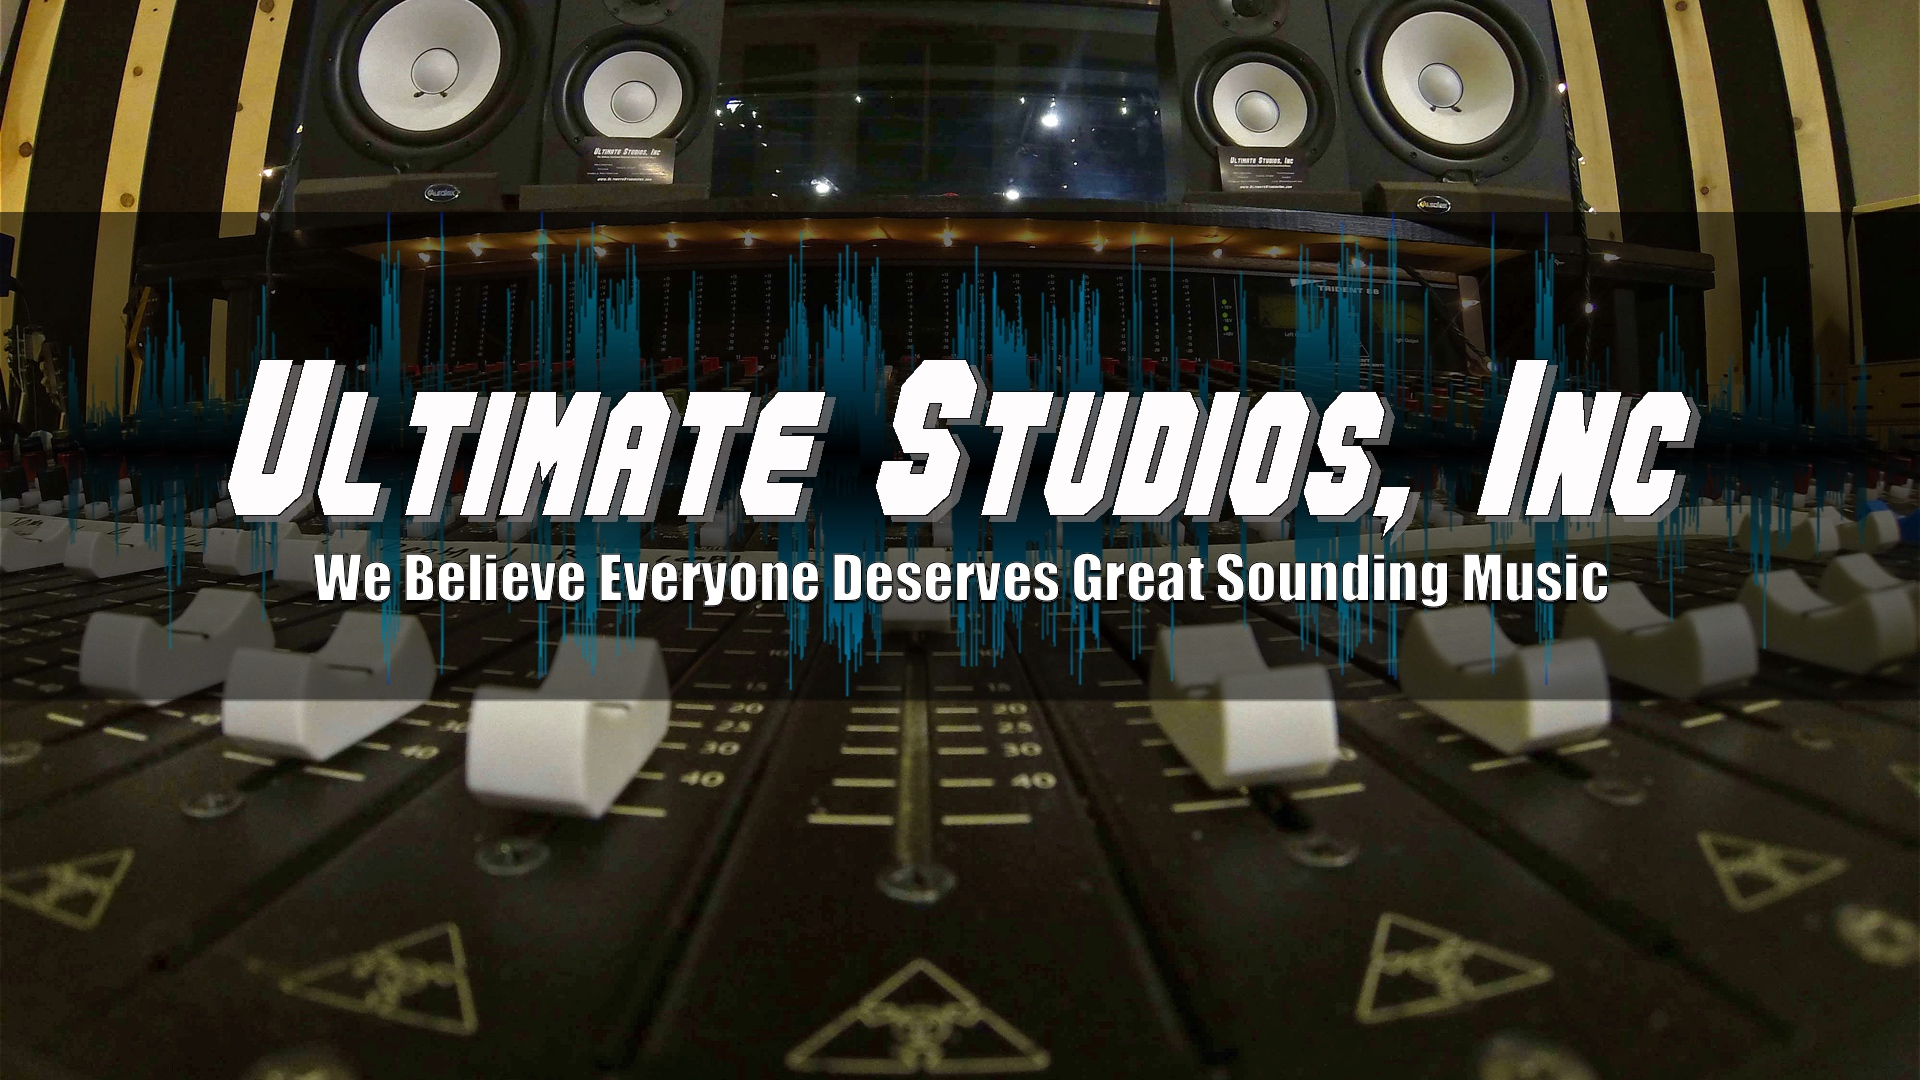 New Recording Studio Trailer!